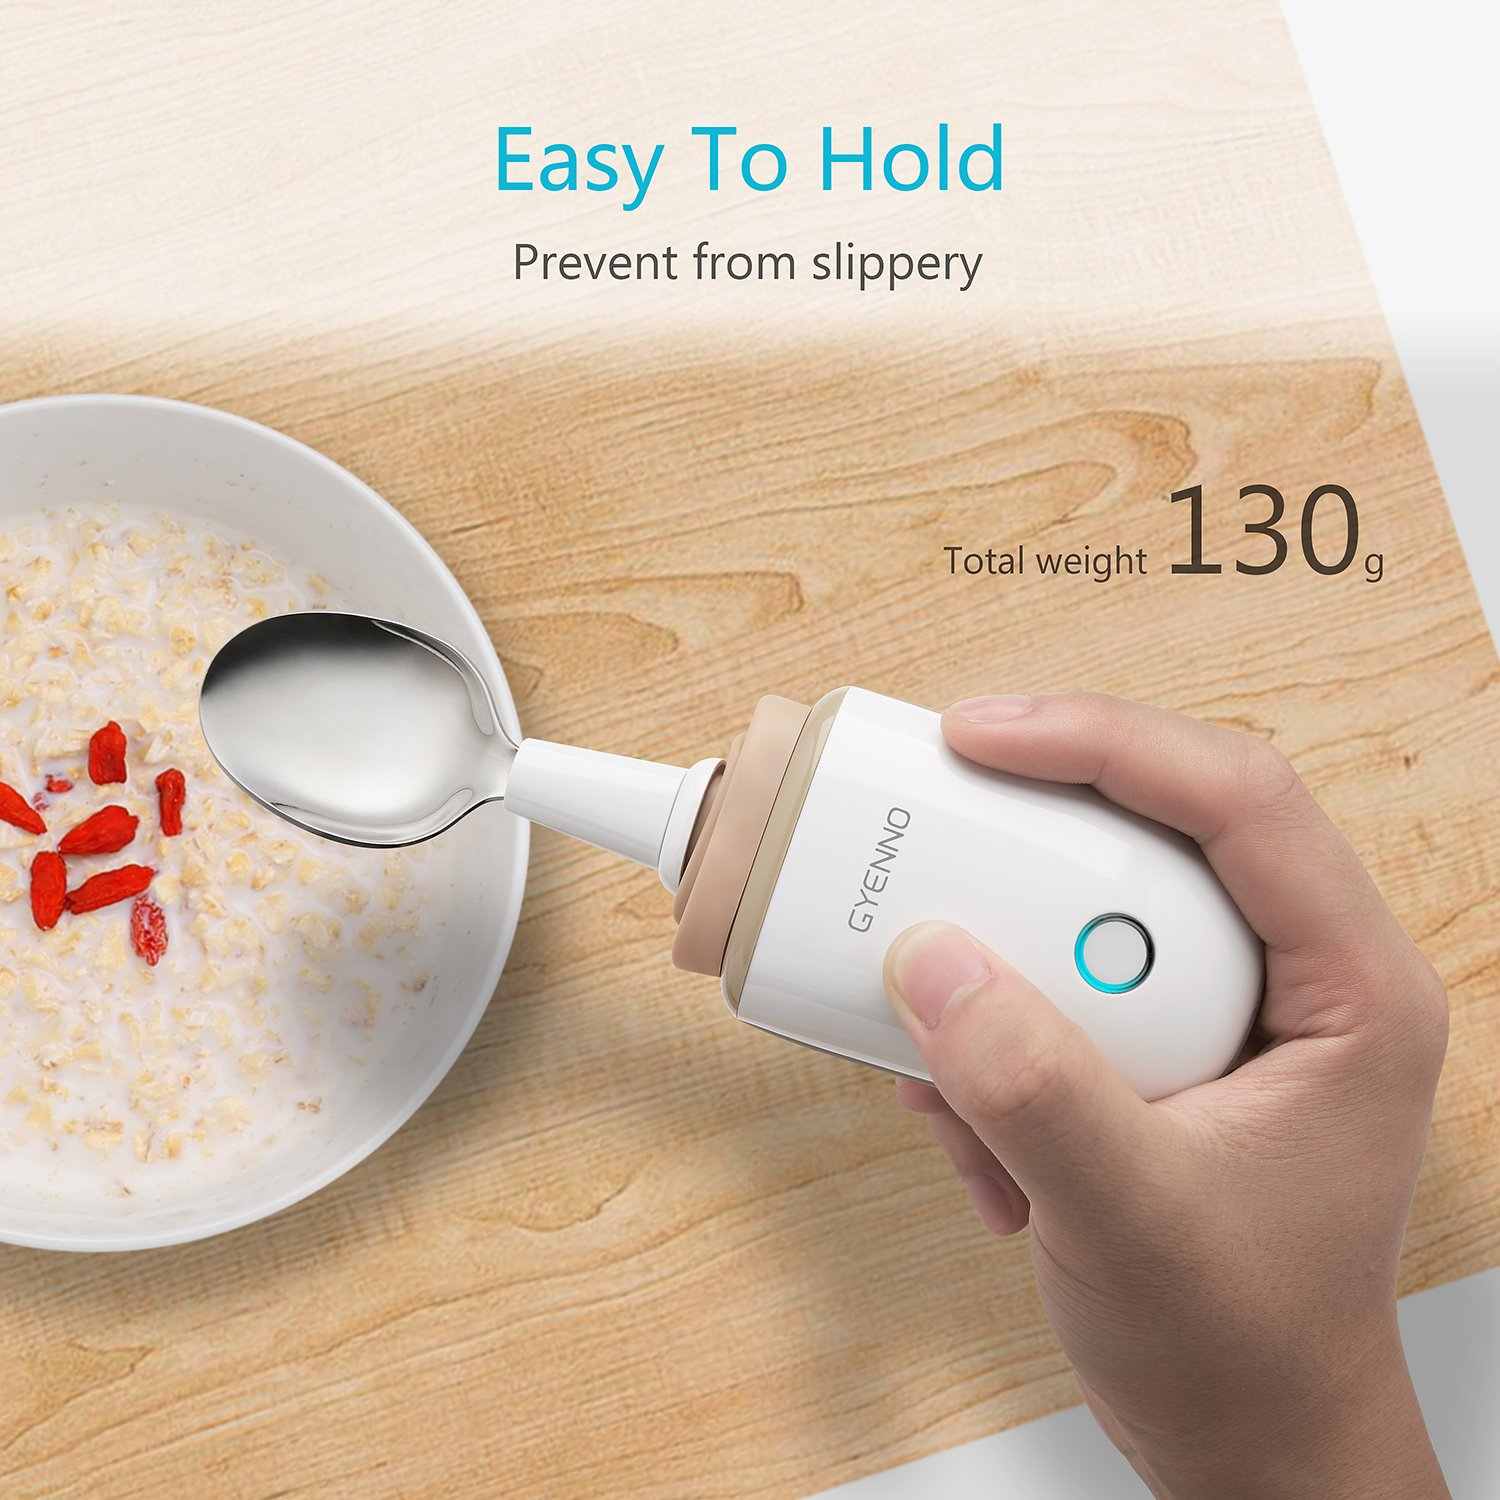 Parkinson Spoon for hand tremor, GYENNO Steady Spoon with Self Stabilizing Smart Lift Kit for Parkinsons Patients, Silverware Kit Cutlery for Elderly ¡ (Spoon) by GYENNO (Image #6)